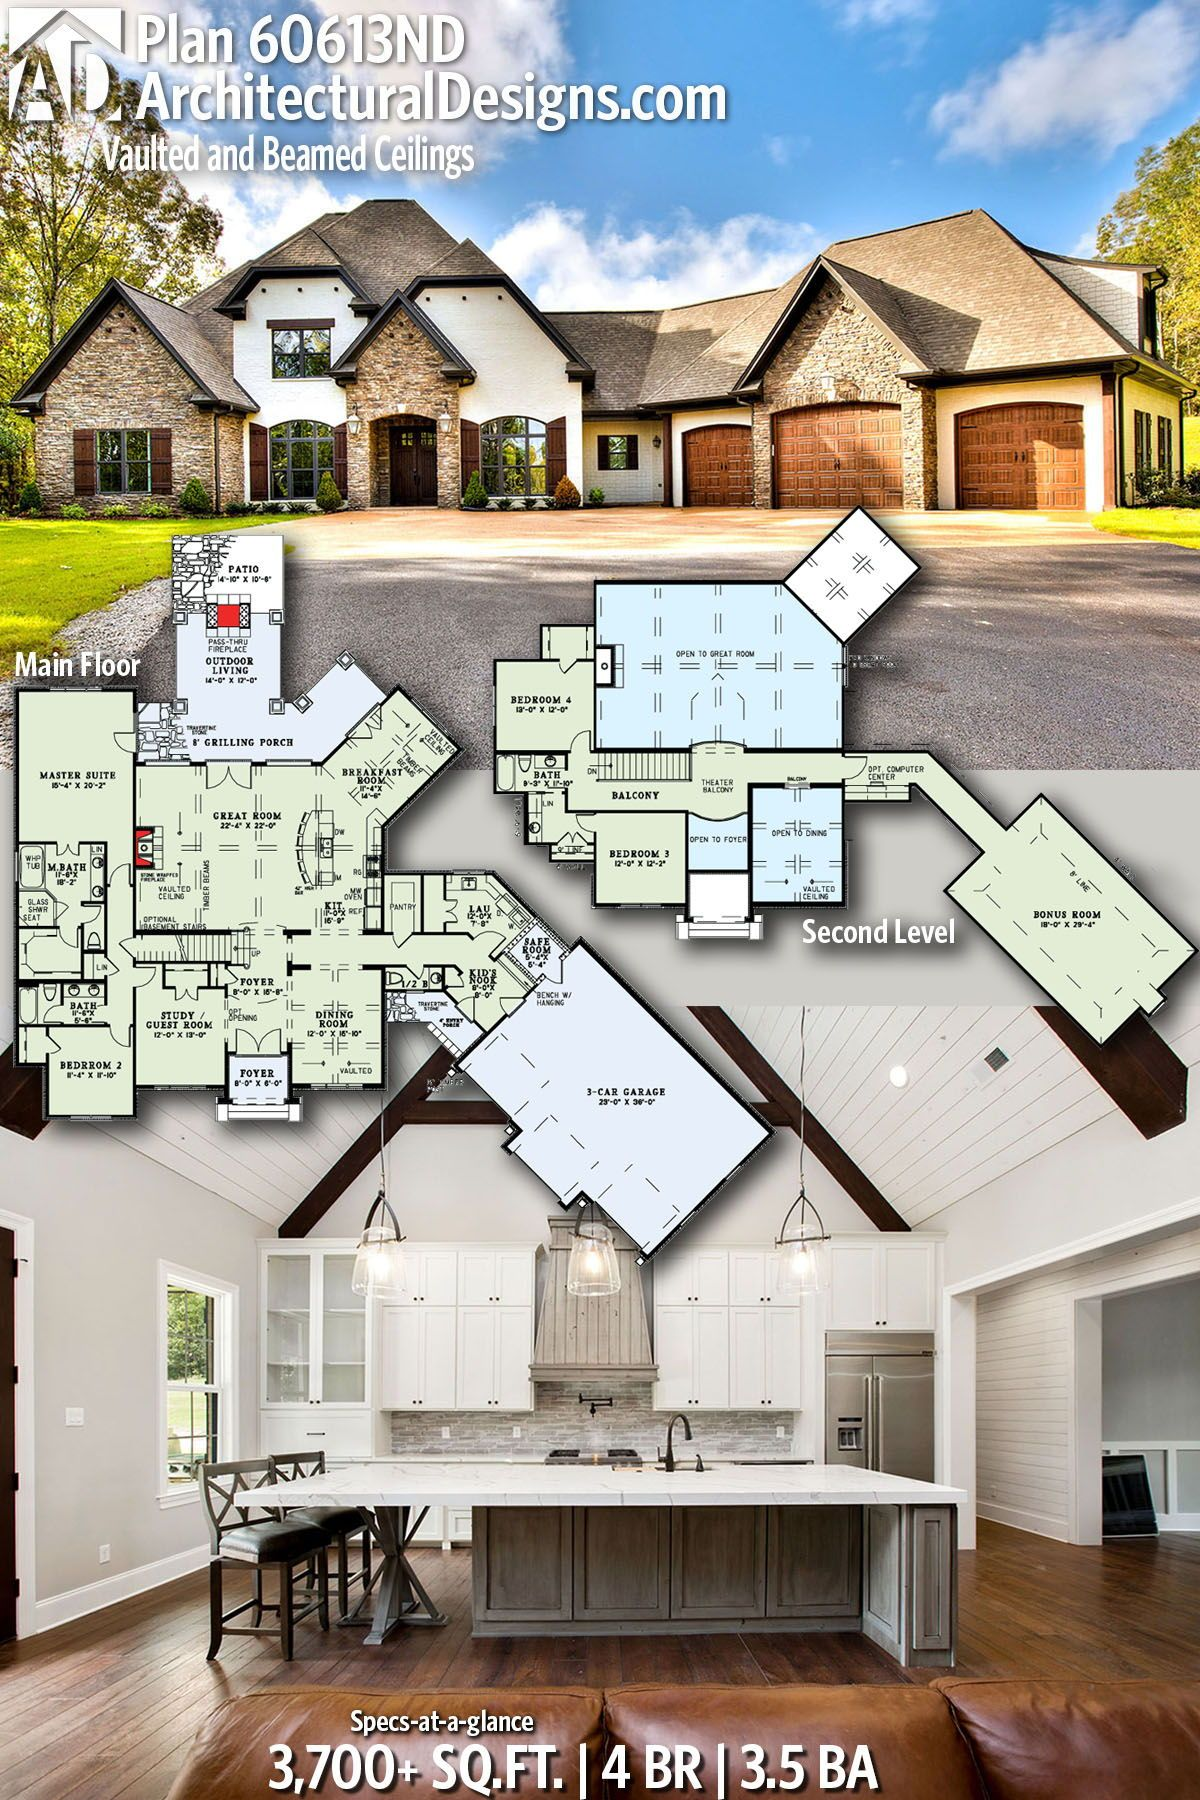 Plan 60613nd Vaulted And Beamed Ceilings House Plans Country House Plans Safe Room